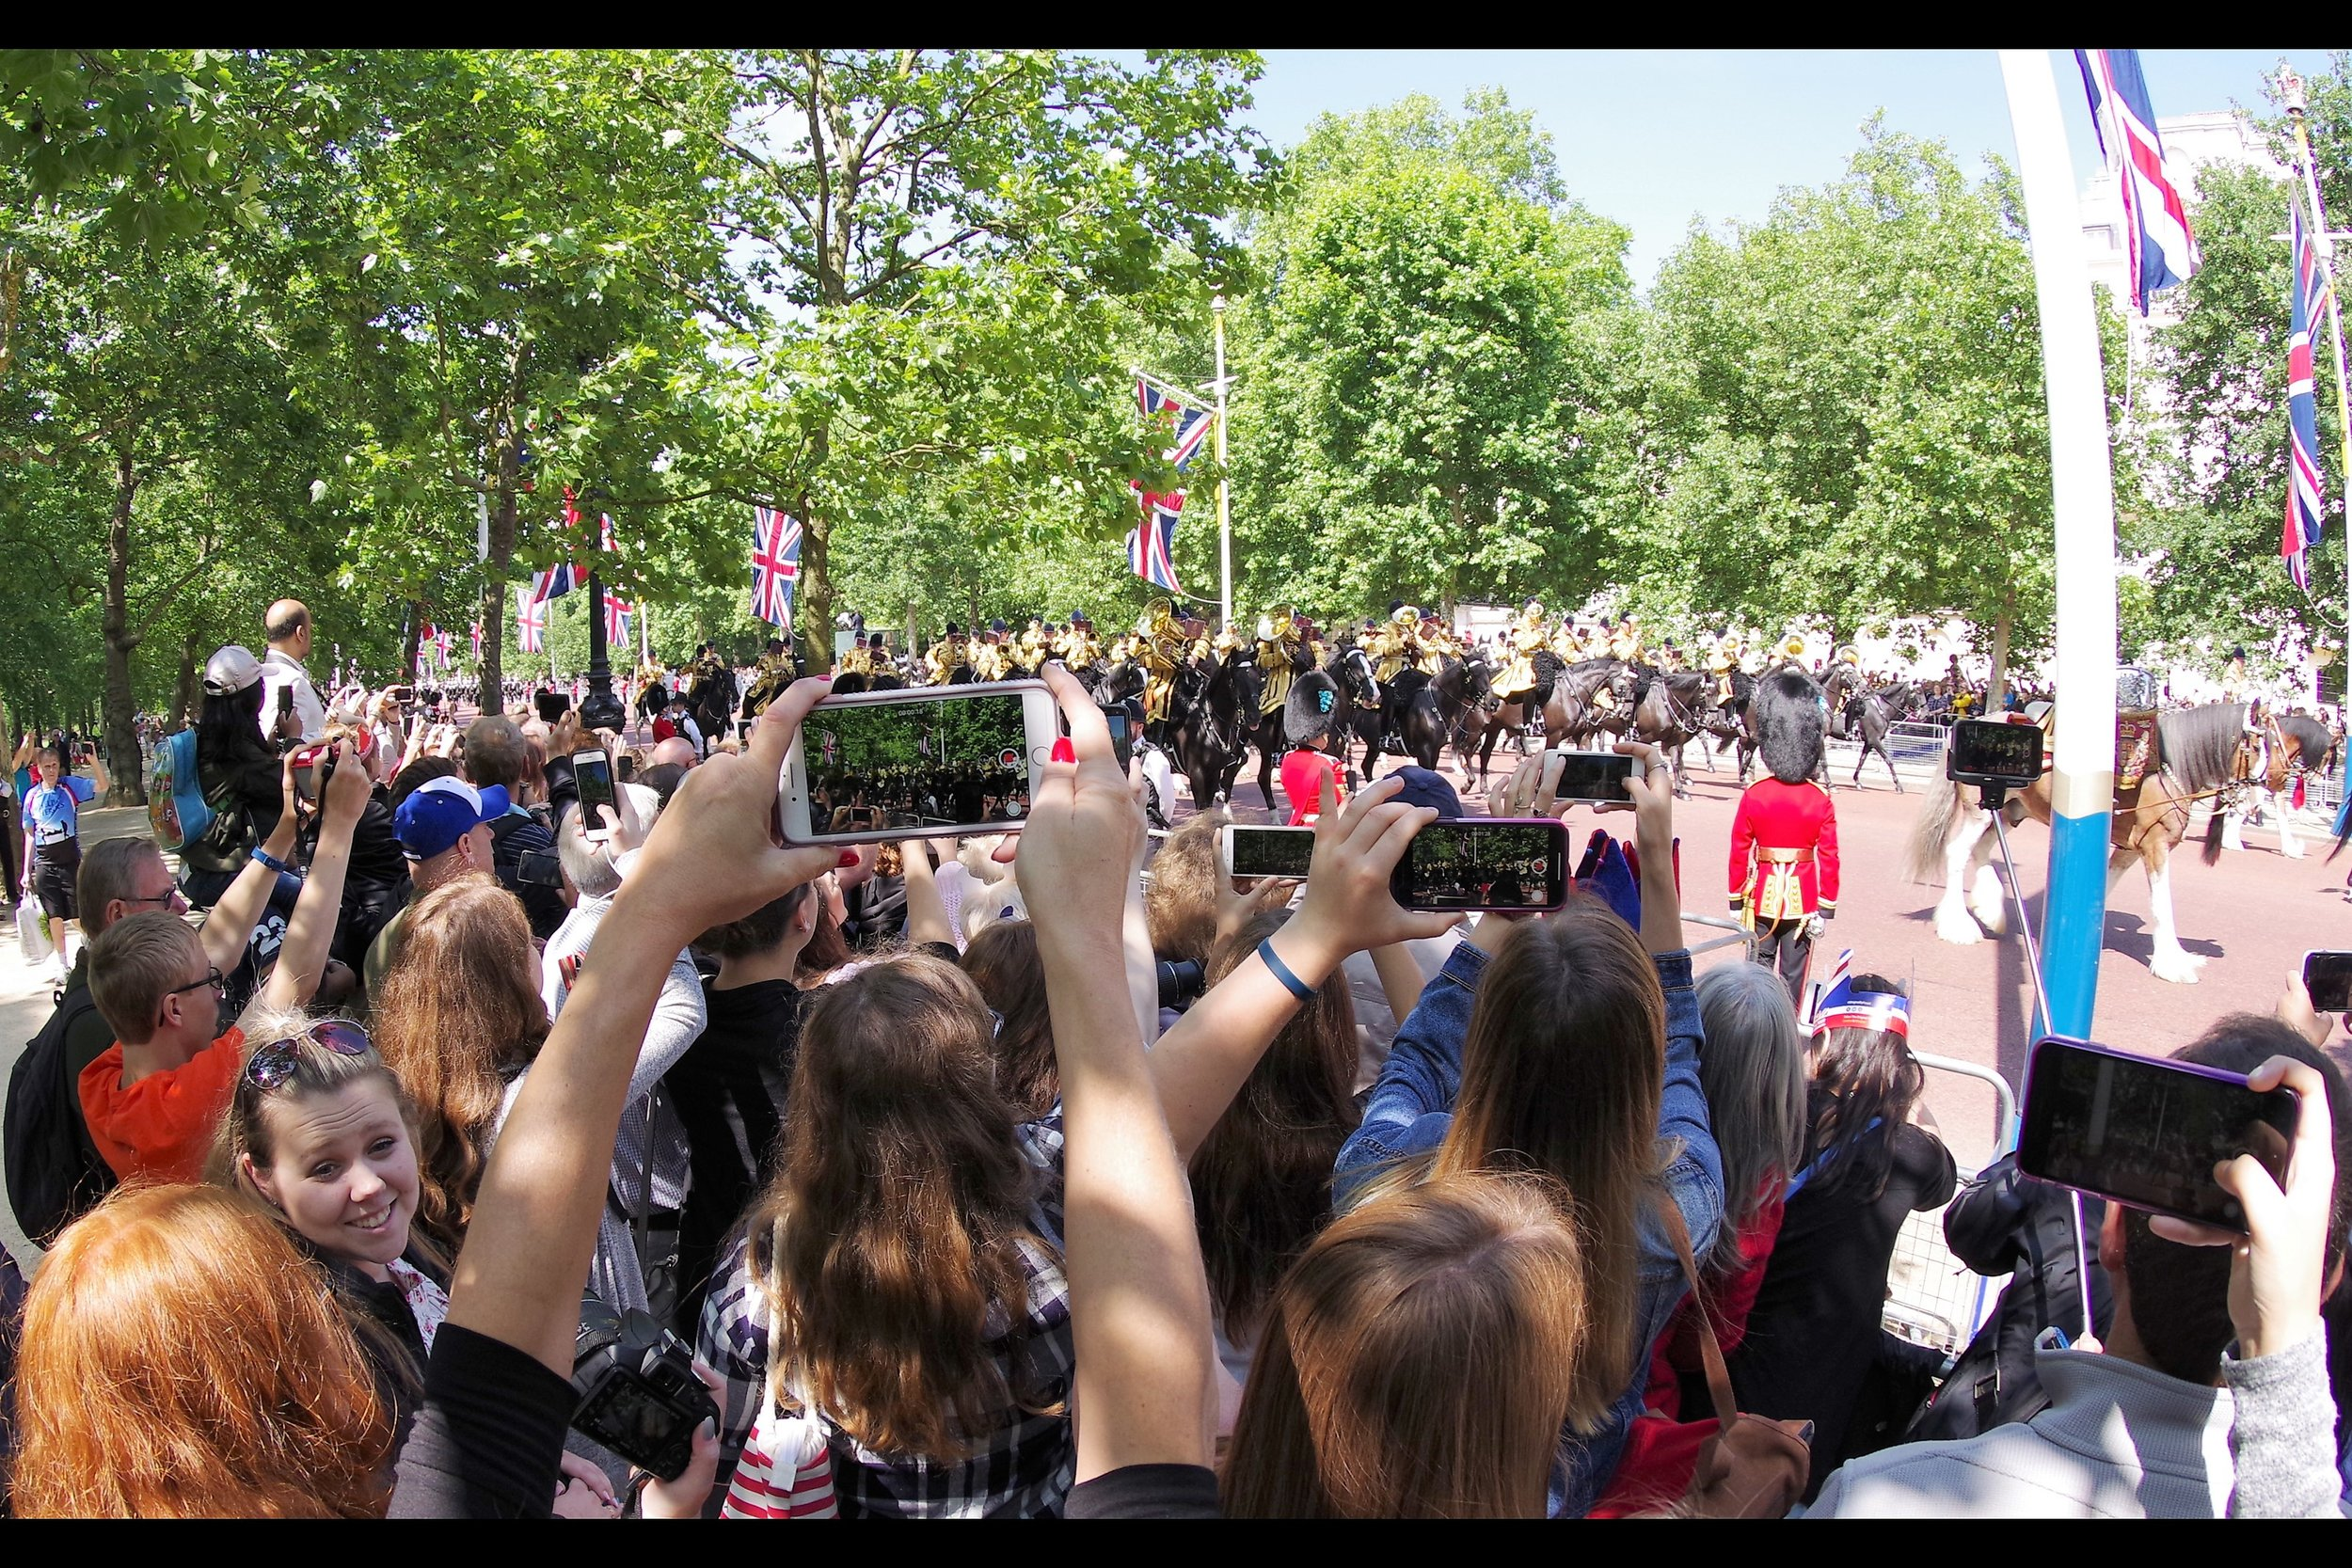 """Position 1 was inside The Park, about halfway up The Mall. You might think taking a small step-ladder to an event is somehow """"cheating"""" but given the abandon with which the crowd holds mobile phones aloft, it's barely all I can do in this particular Arms Race."""